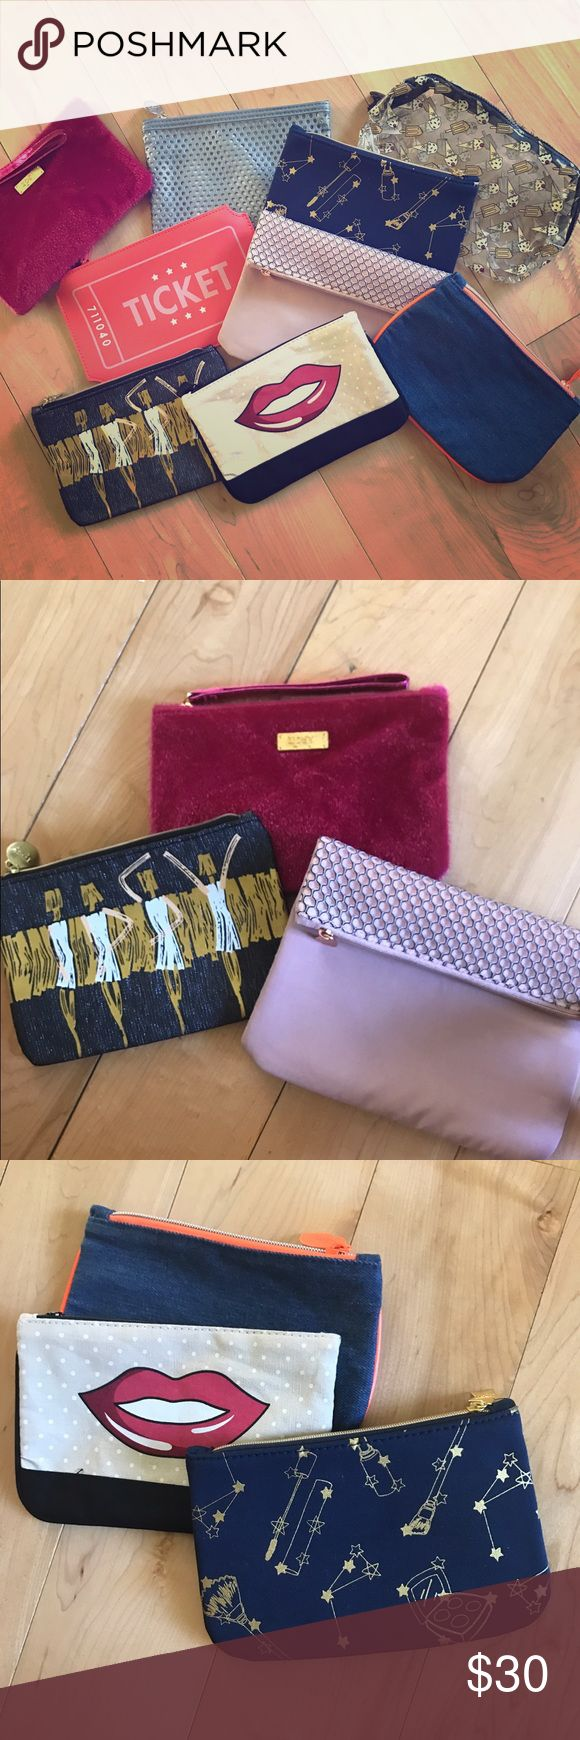 """Ipsy Glam Bags Nine Ipsy Glam bags for sale-- bags only. Buy all nine for $30, mix and match 3 for $12 or buy one for $5. Most are about 7"""" x 5"""". Happy to answer questions on specific bags Ipsy Bags"""